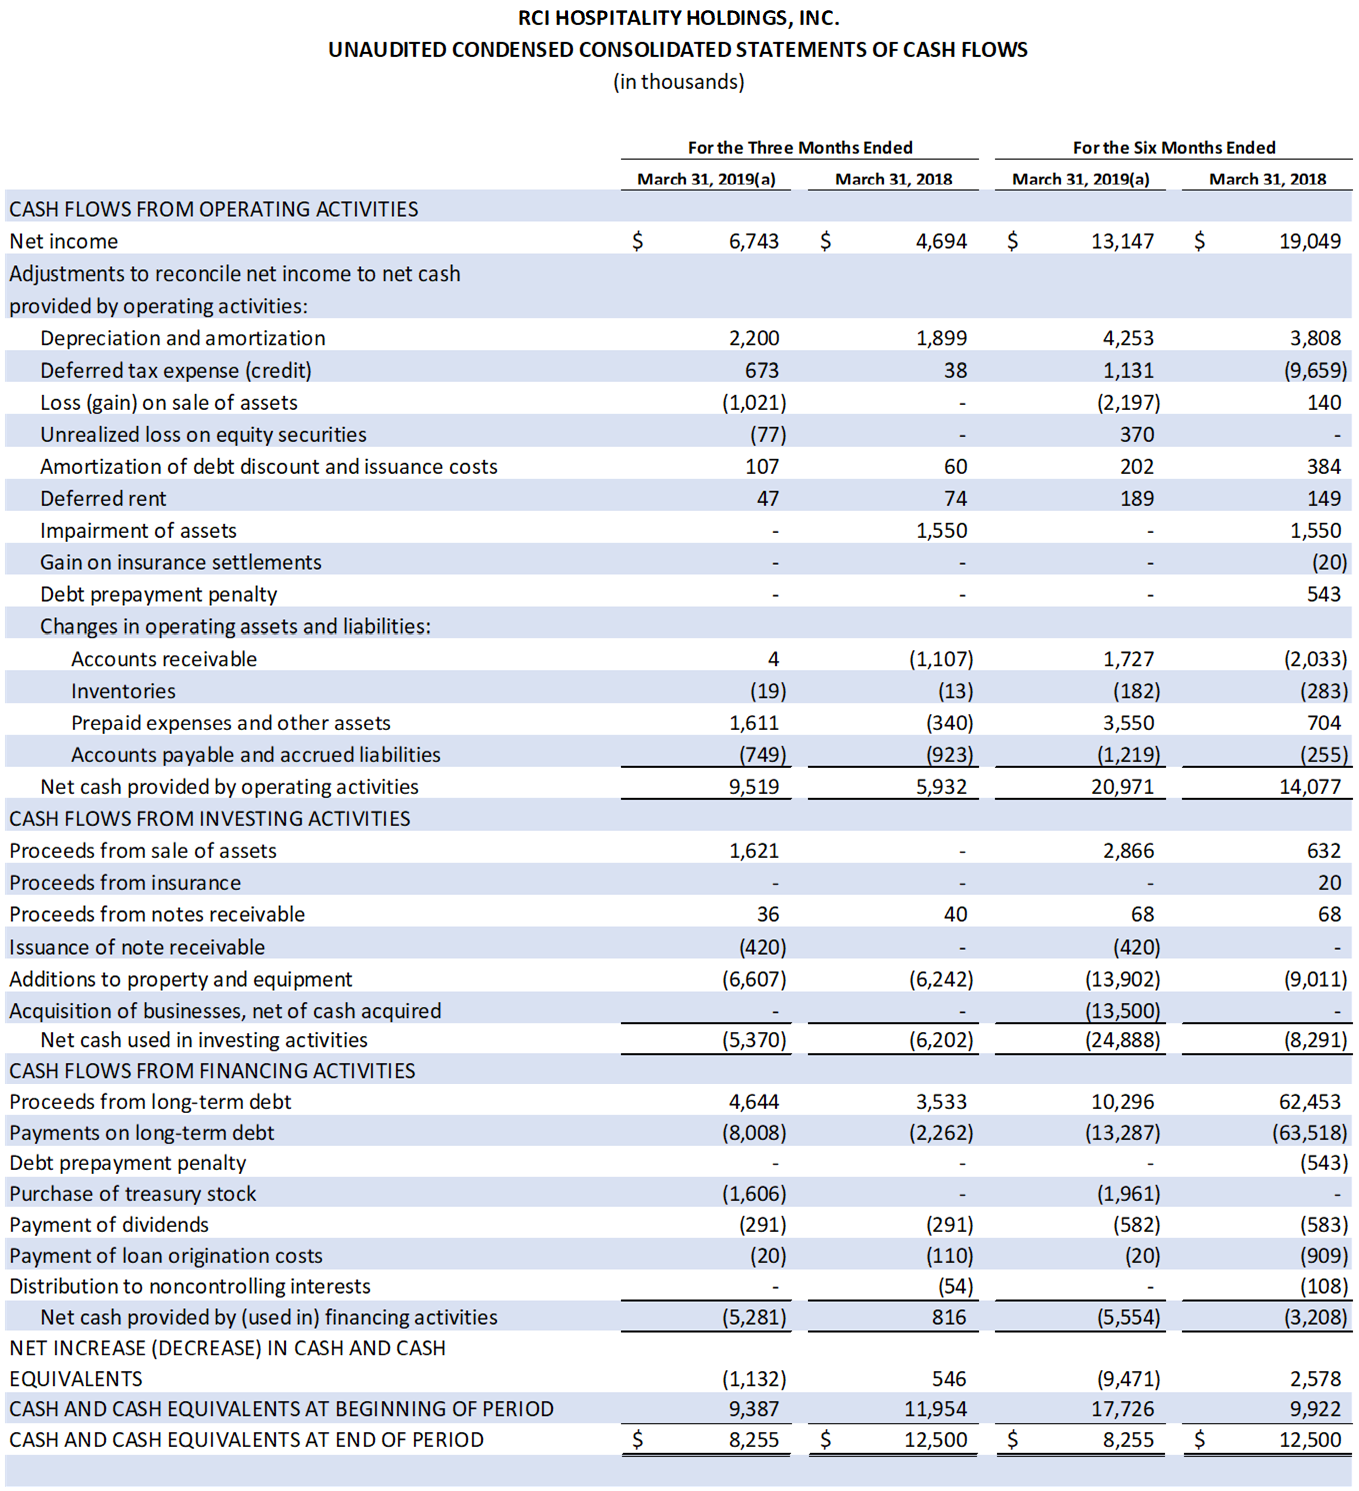 Table: Unaudited Condensed Consolidated Statements of Cash Flows